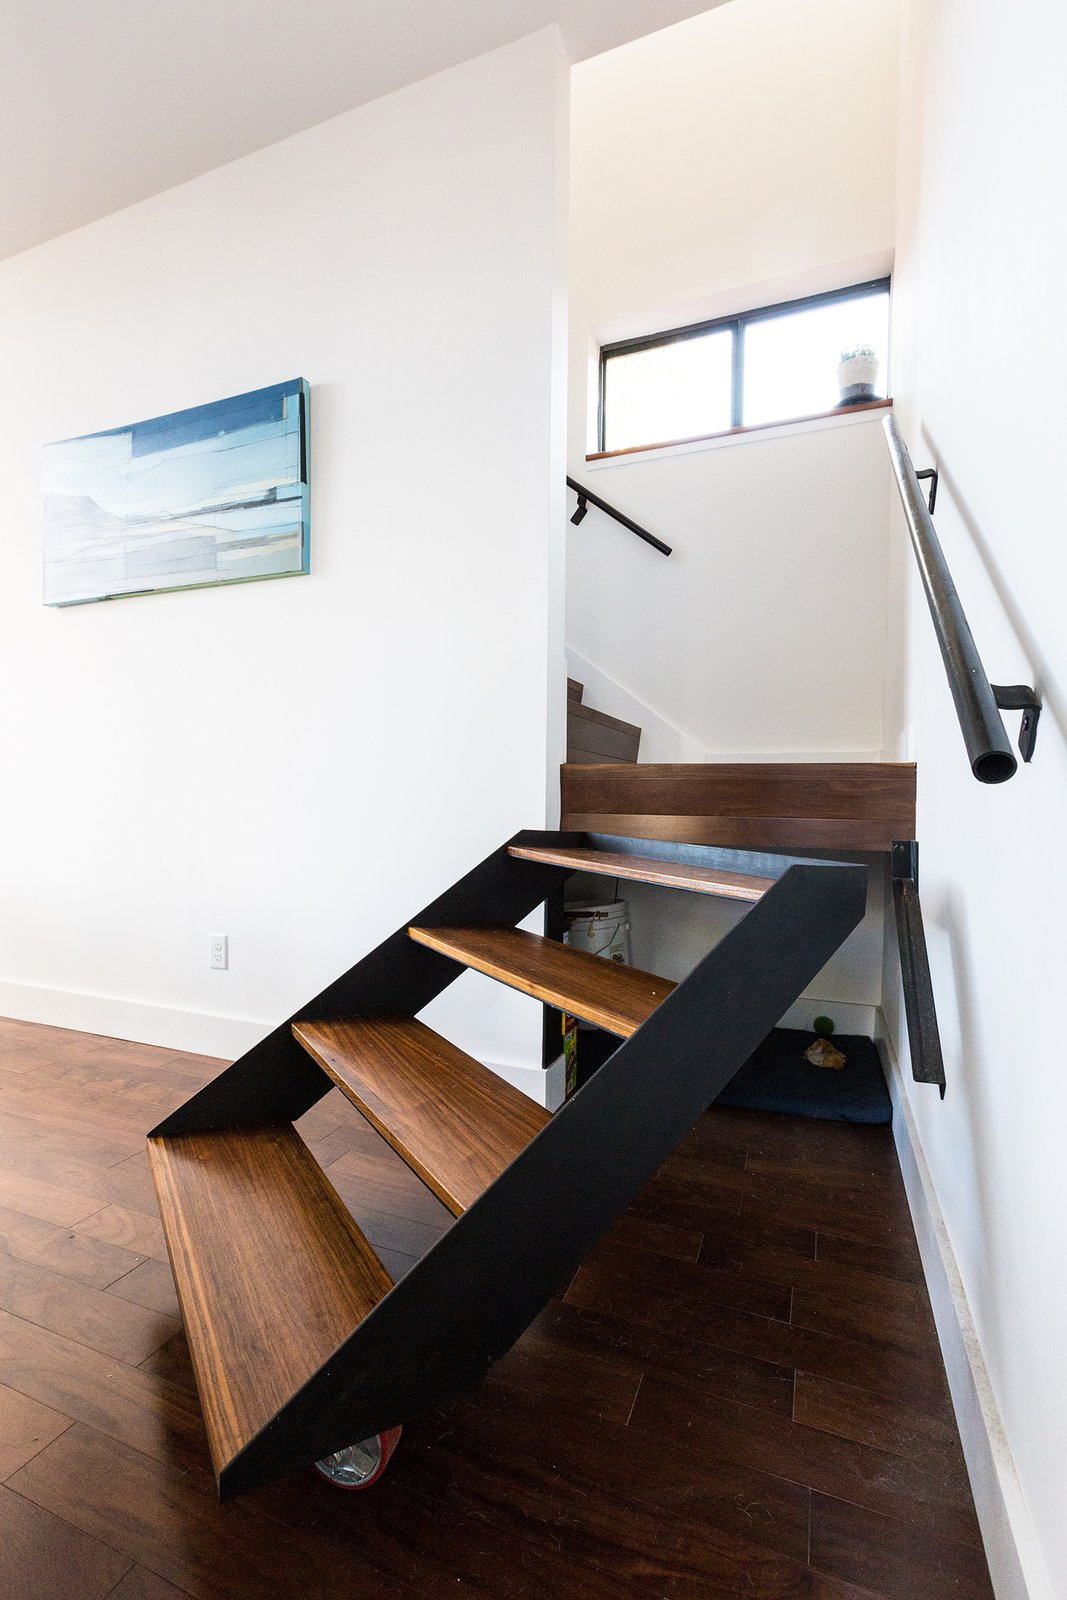 Storage Room and Under Stairs Storage Type The architects, owners of a New Orleans design build firm, fabricated a pivoting stair to allow access to under stair storage. Painting by Tiffany Lin.  Dorgenois